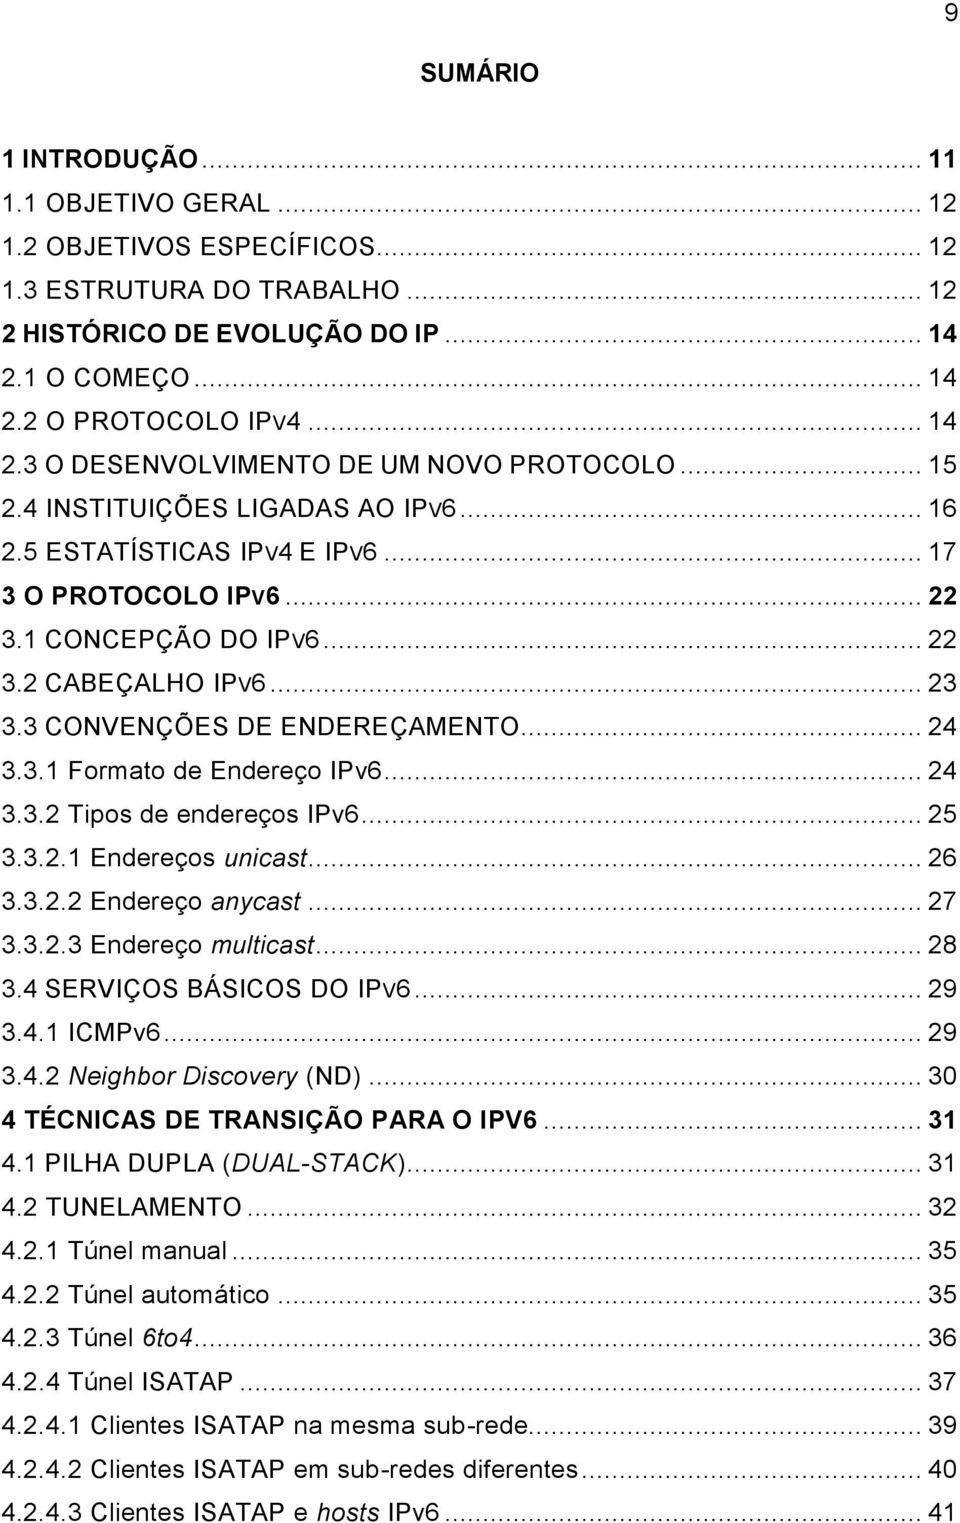 .. 24 3.3.2 Tipos de endereços IPv6... 25 3.3.2.1 Endereços unicast... 26 3.3.2.2 Endereço anycast... 27 3.3.2.3 Endereço multicast... 28 3.4 SERVIÇOS BÁSICOS DO IPV6... 29 3.4.1 ICMPv6... 29 3.4.2 Neighbor Discovery (ND).